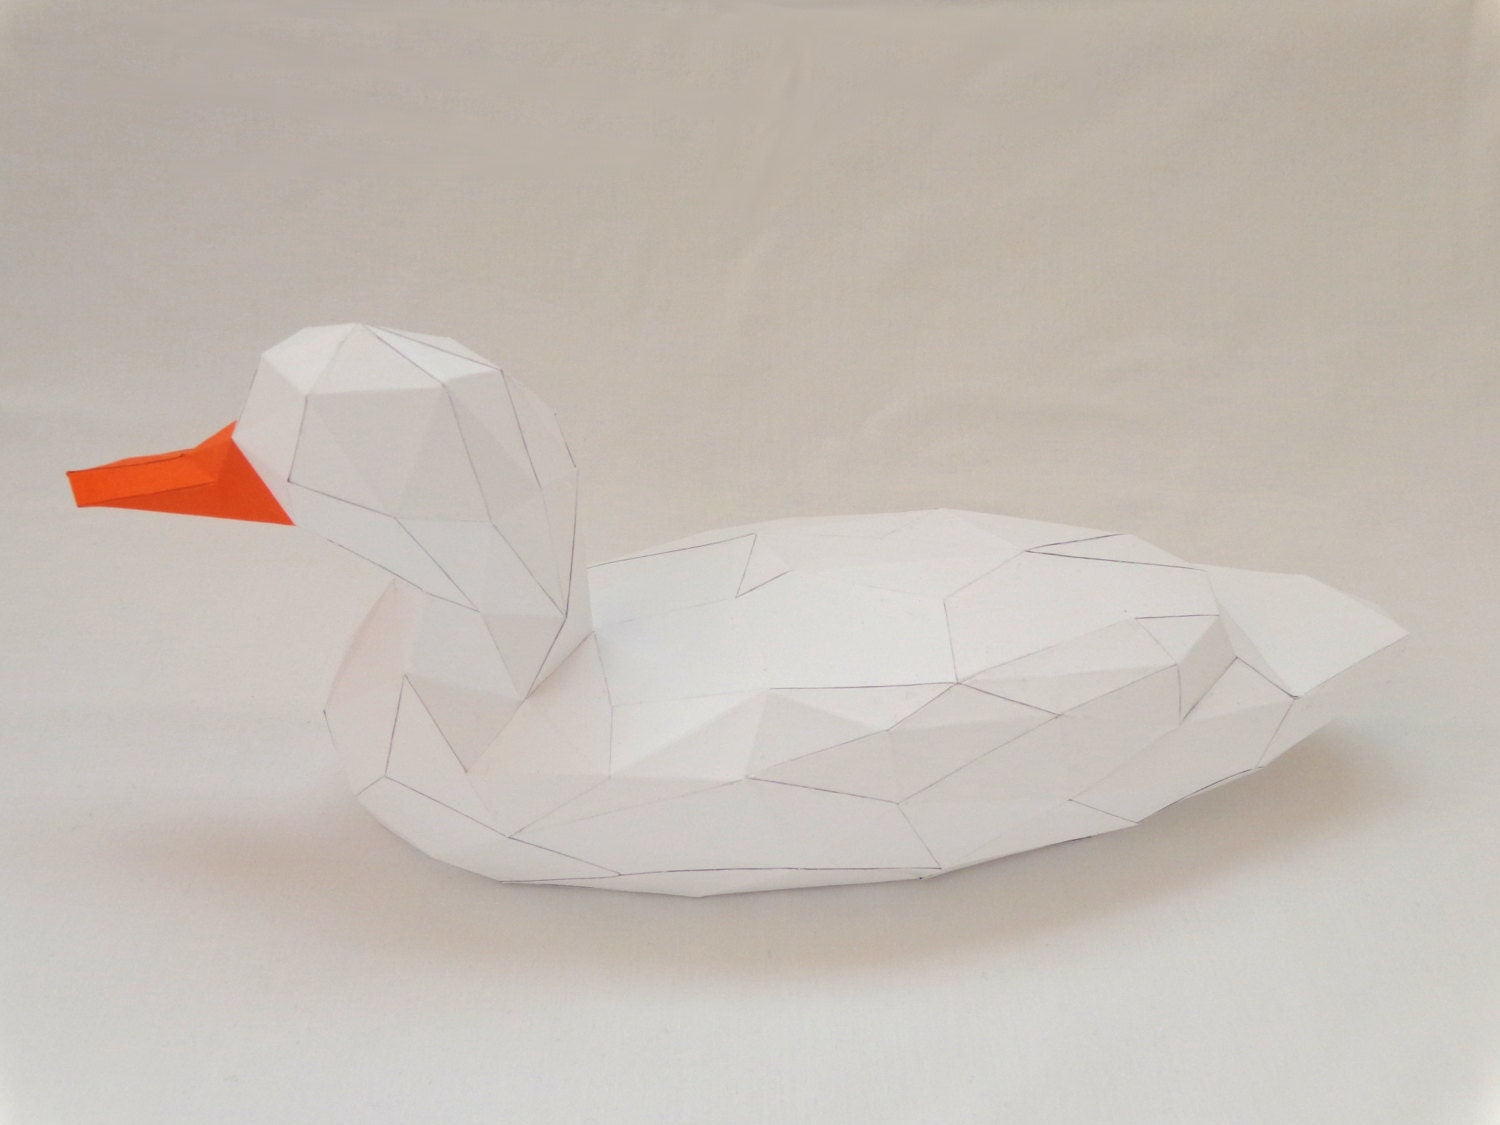 Duck Papercraft PDF Pack - 3D Paper Sculpture Template with ...